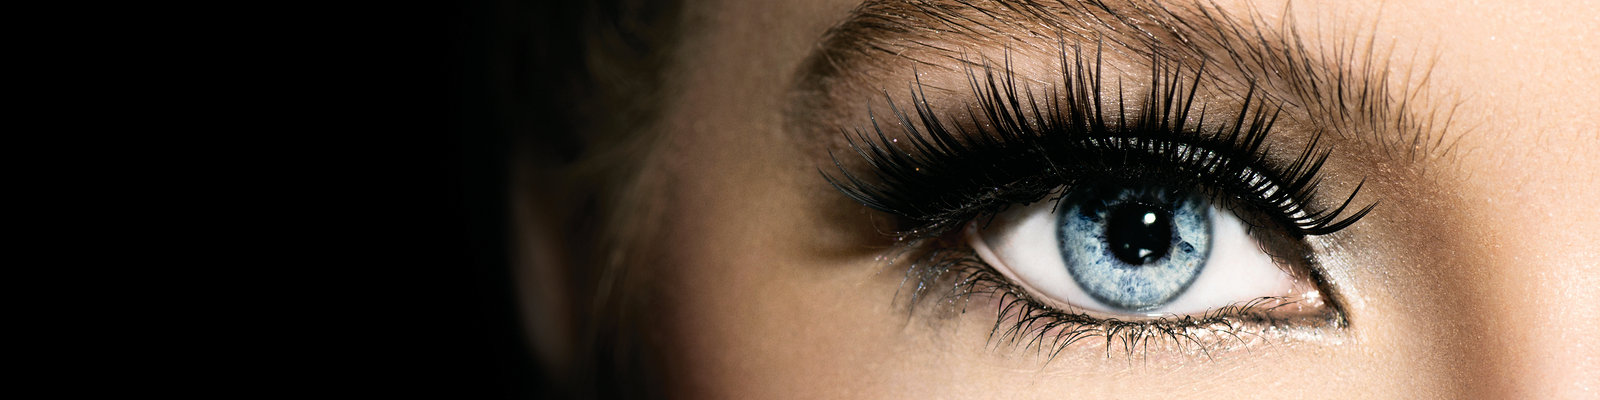 Eyelash Extensions Salon Lewisville